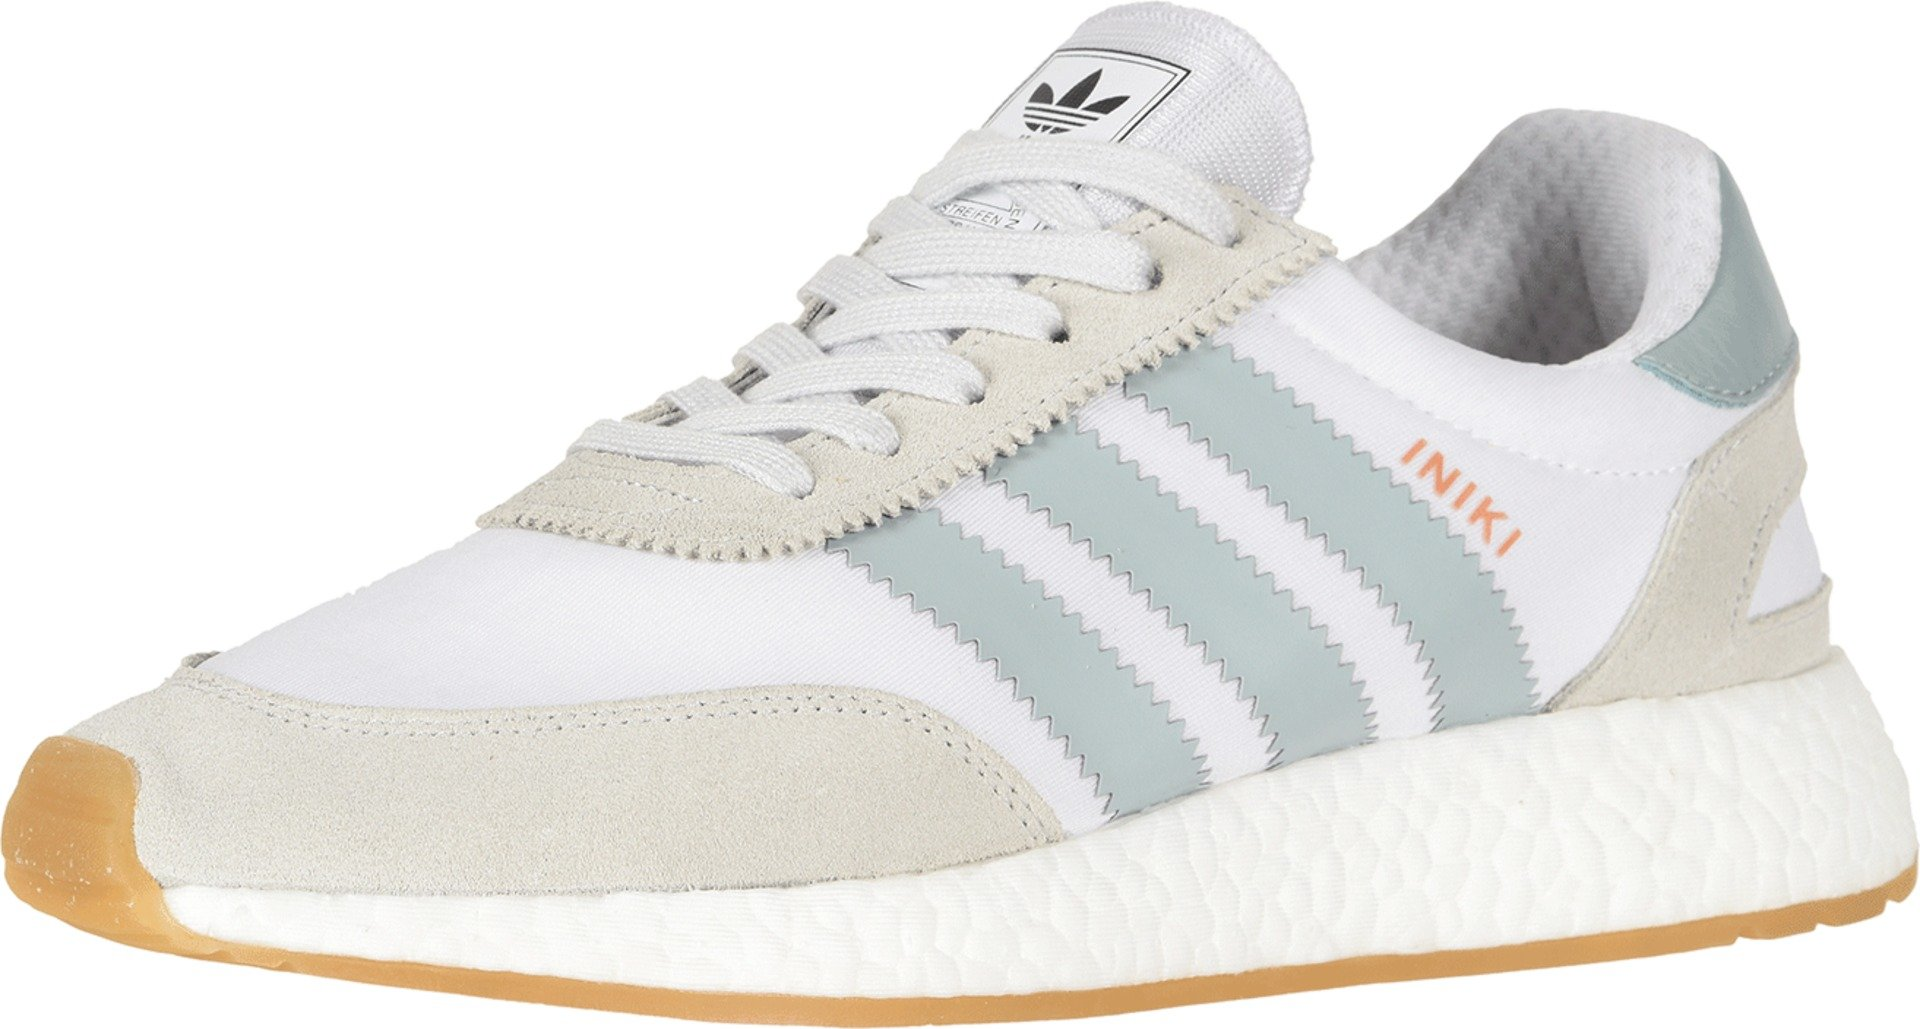 Details about NEW WOMEN'S ADIDAS ORIGINALS I 5923 INIKI BOOST SHOES WHITE ICEY PINK D97348